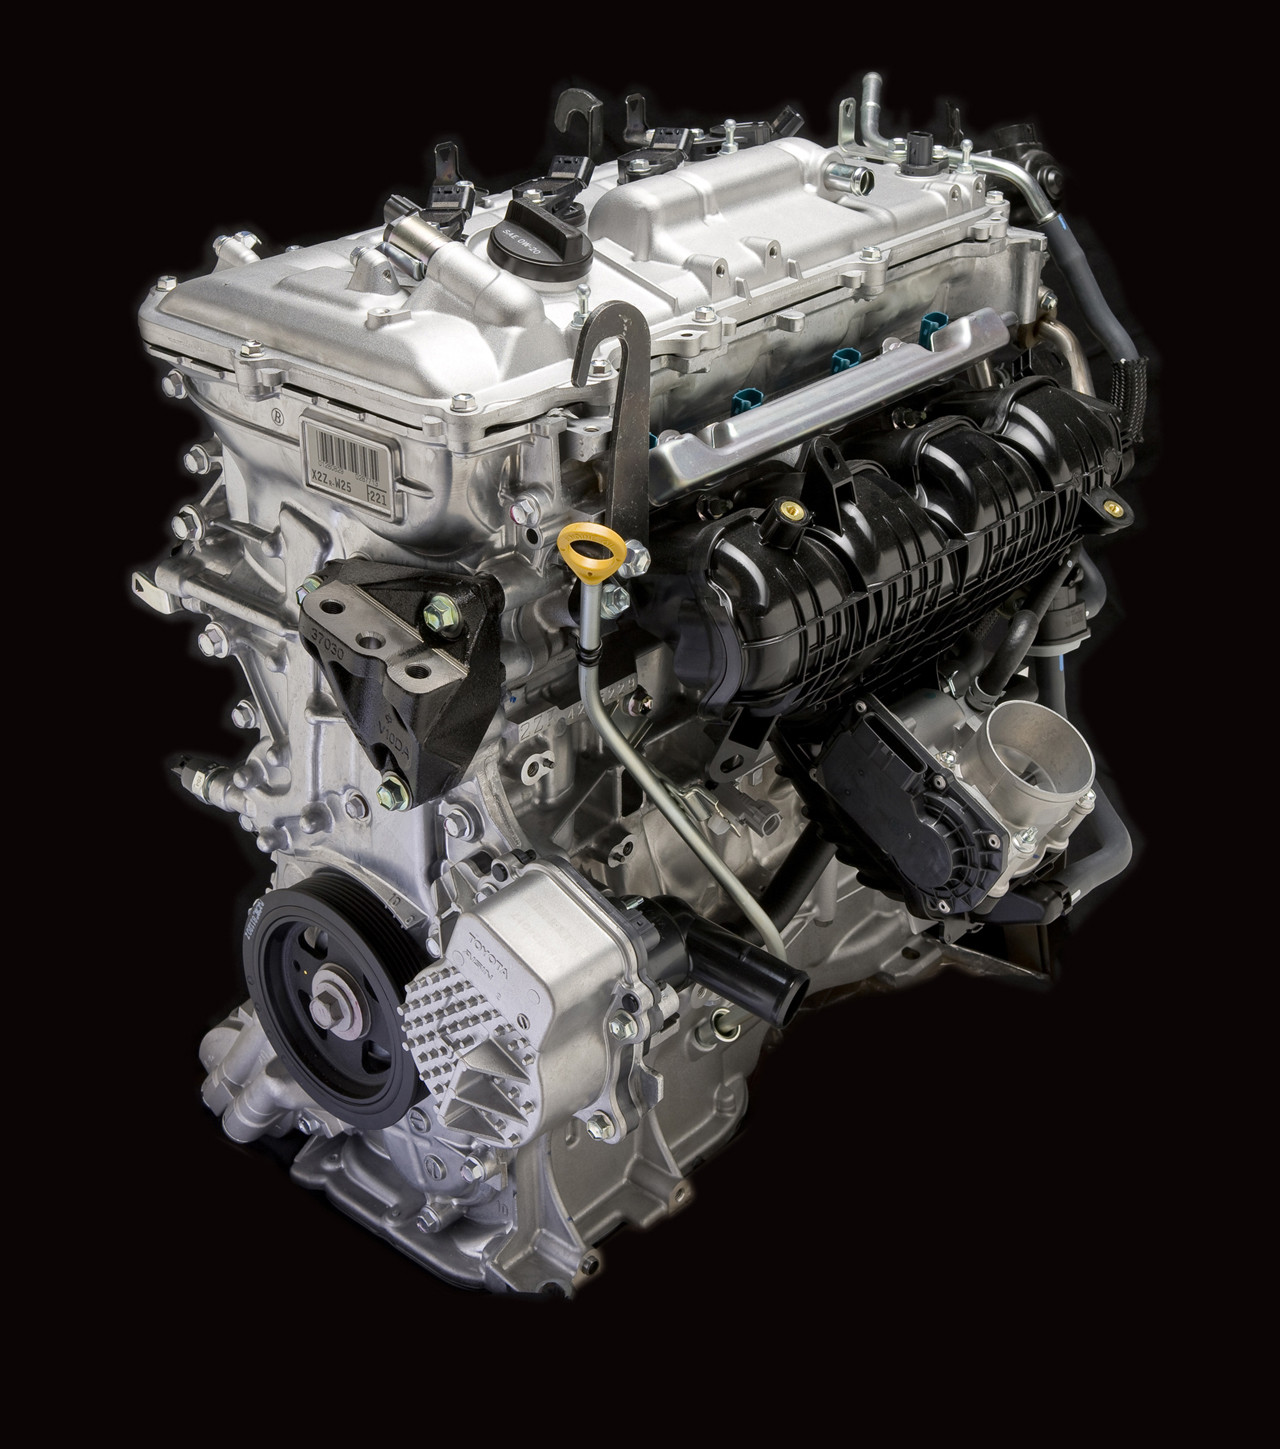 Ward's 10 Best Engines Of 2010